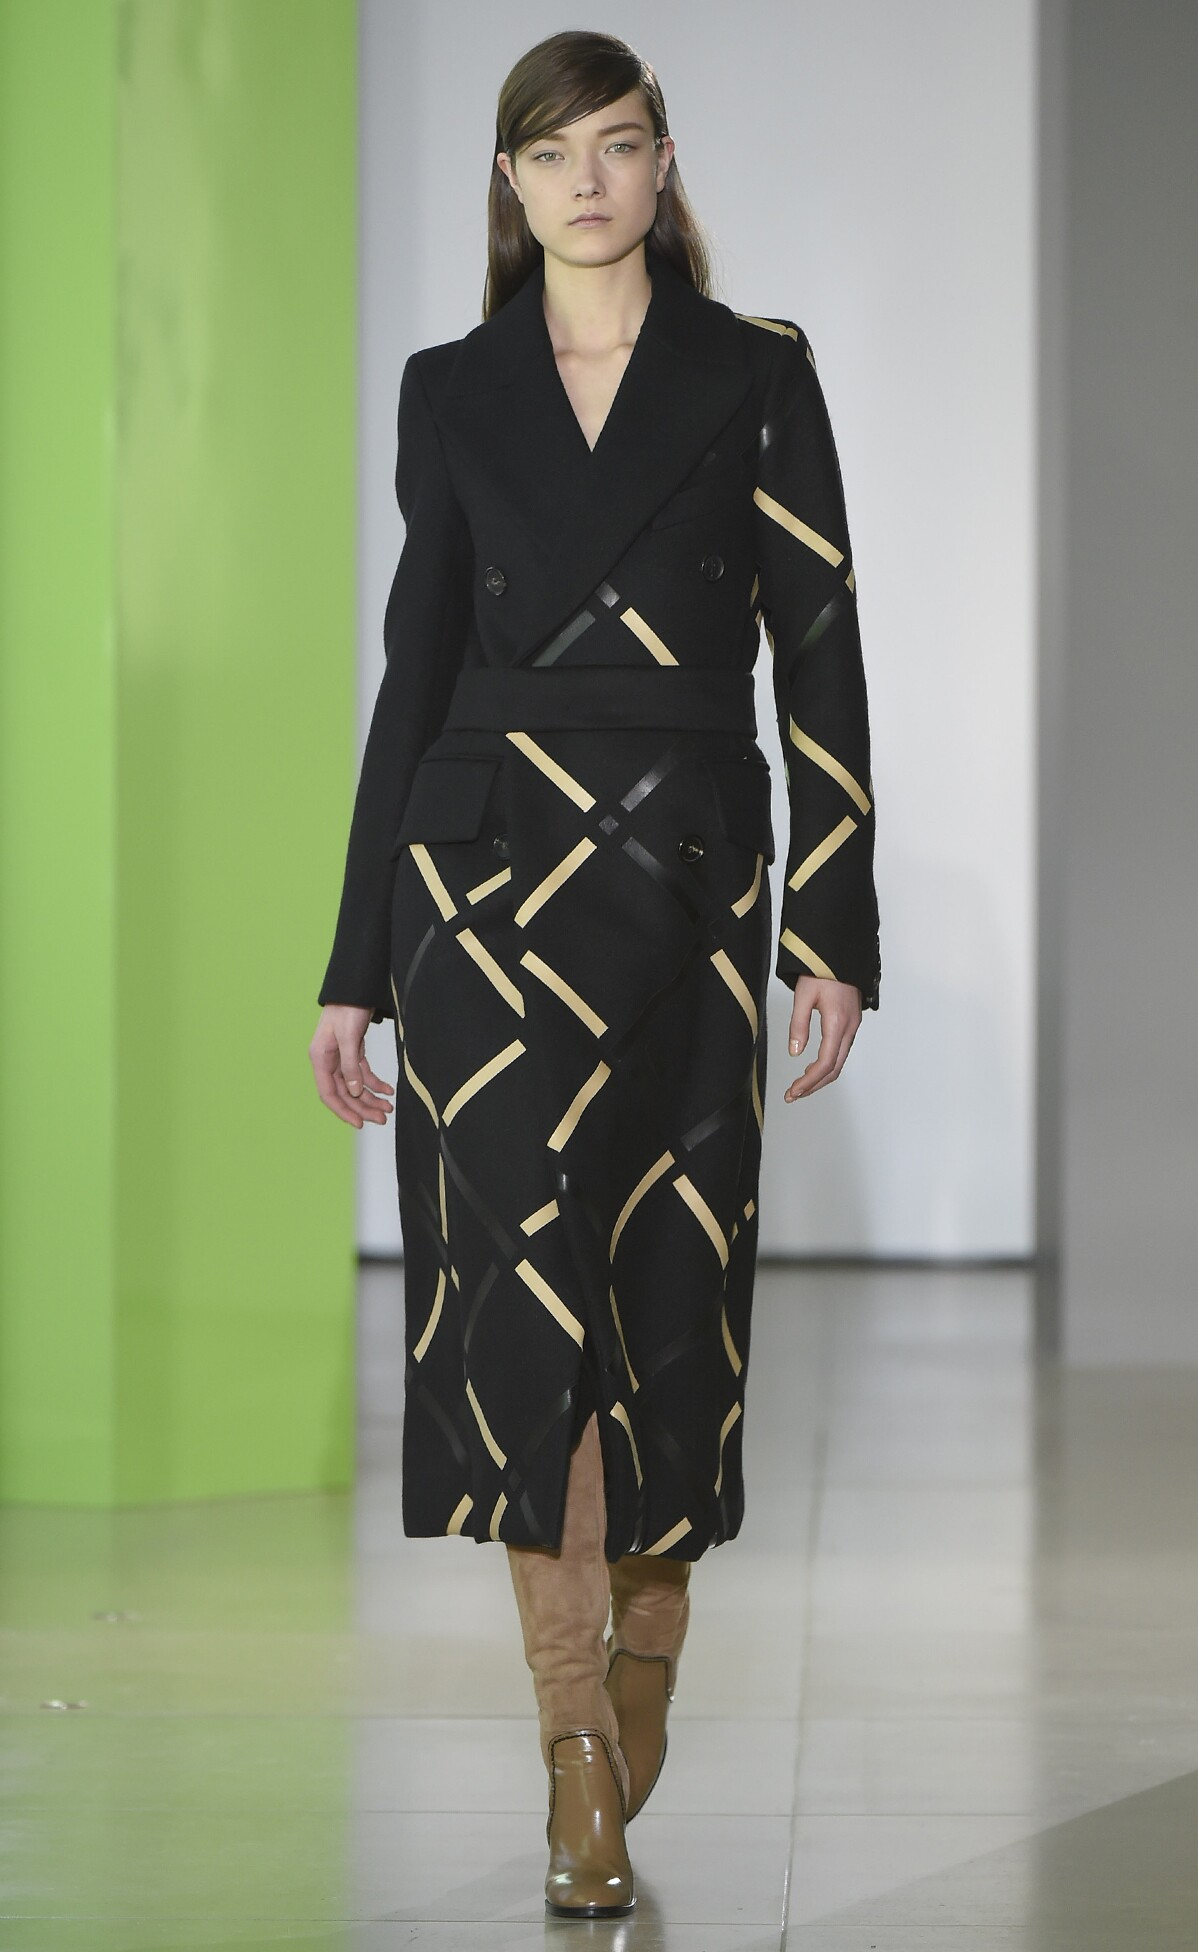 Jil Sander Collection Fashion Show FW 2015 2016